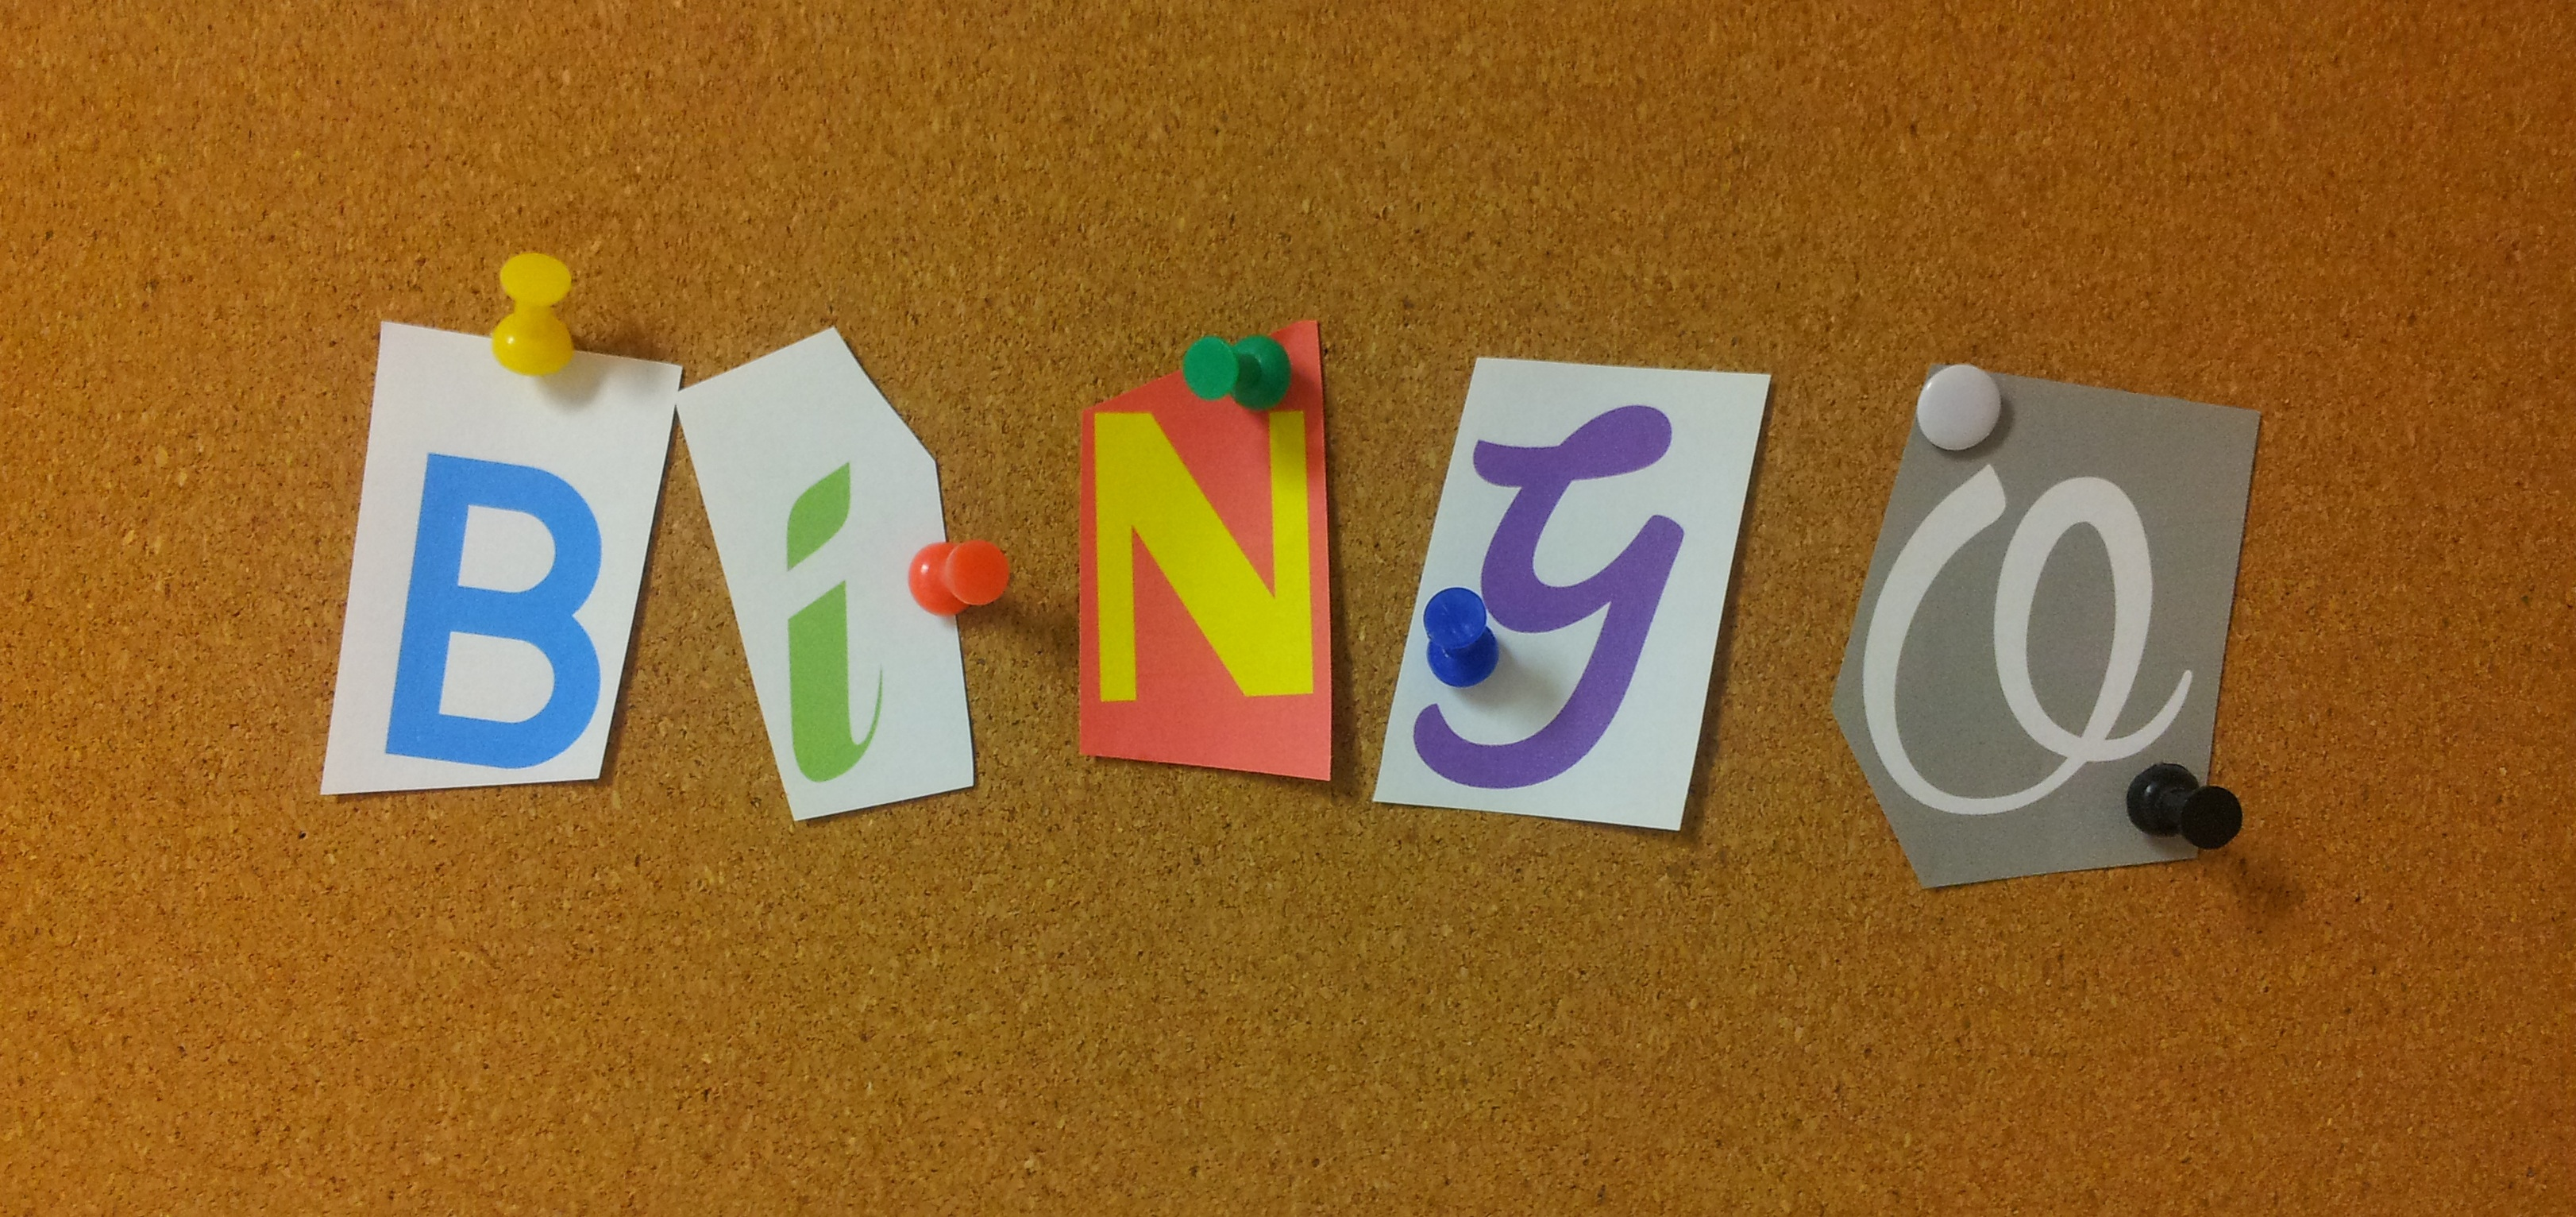 The word Bingo spelled out on a bulletin board